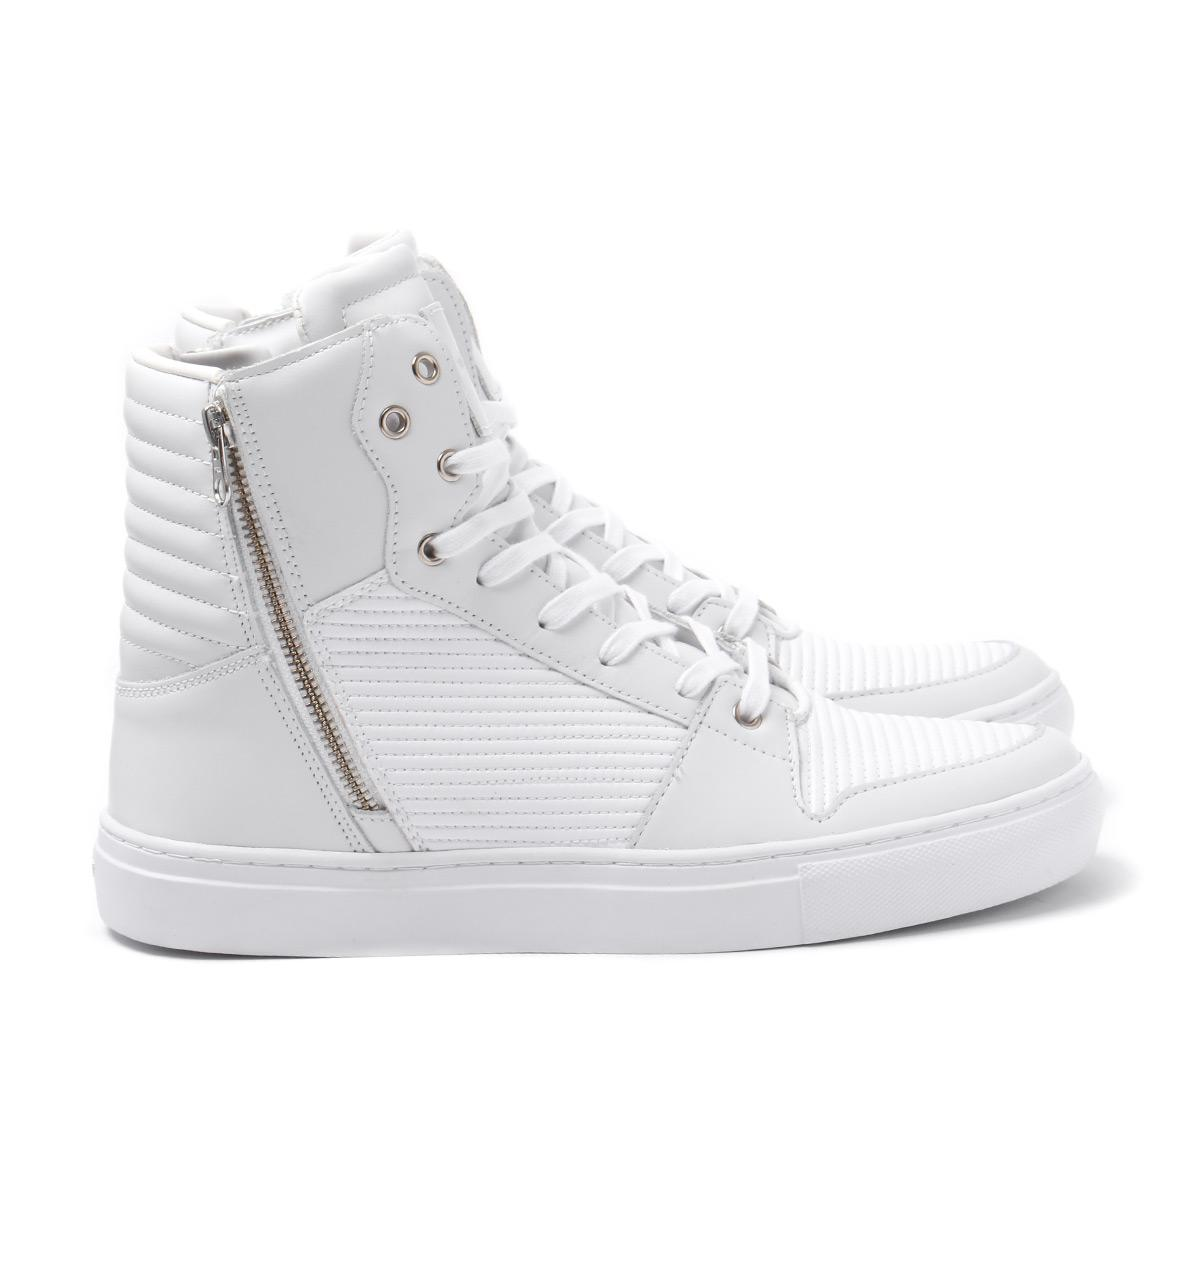 Mens Adonis Hi-Top Trainers Creative Recreation yHDkMC0cc